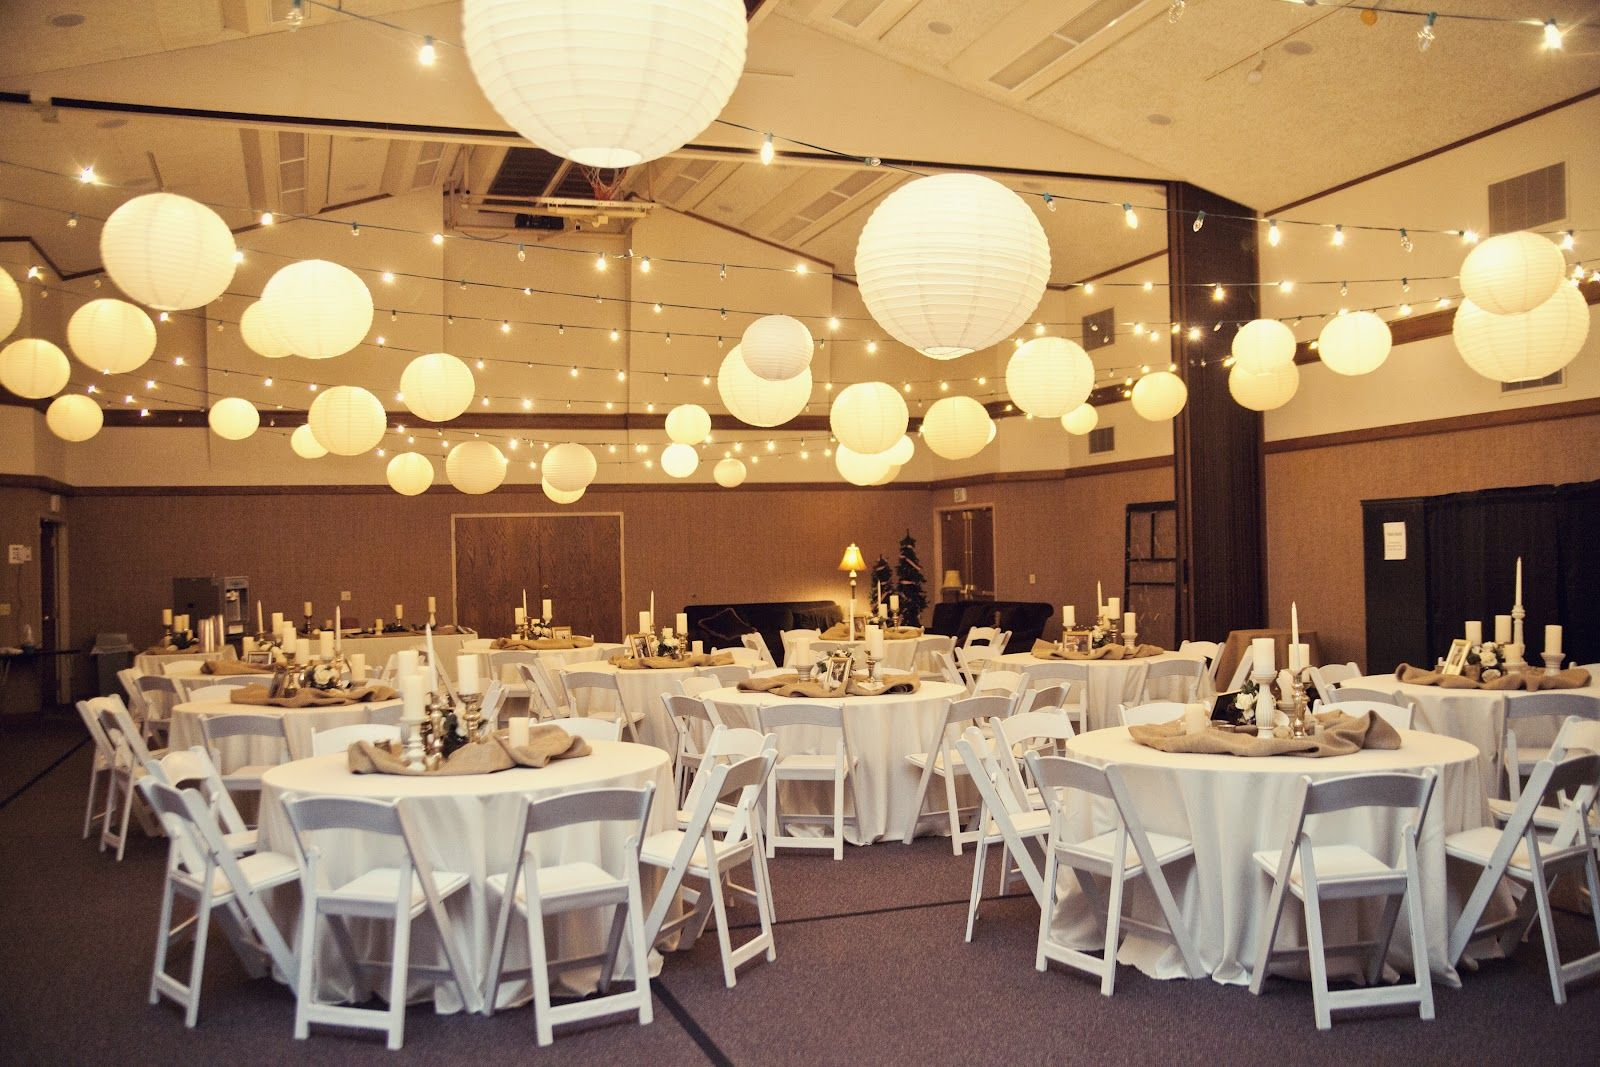 wedding decoration Reception Ceiling Idea Decorating with EXTREMELY high ceilings Help The Knot